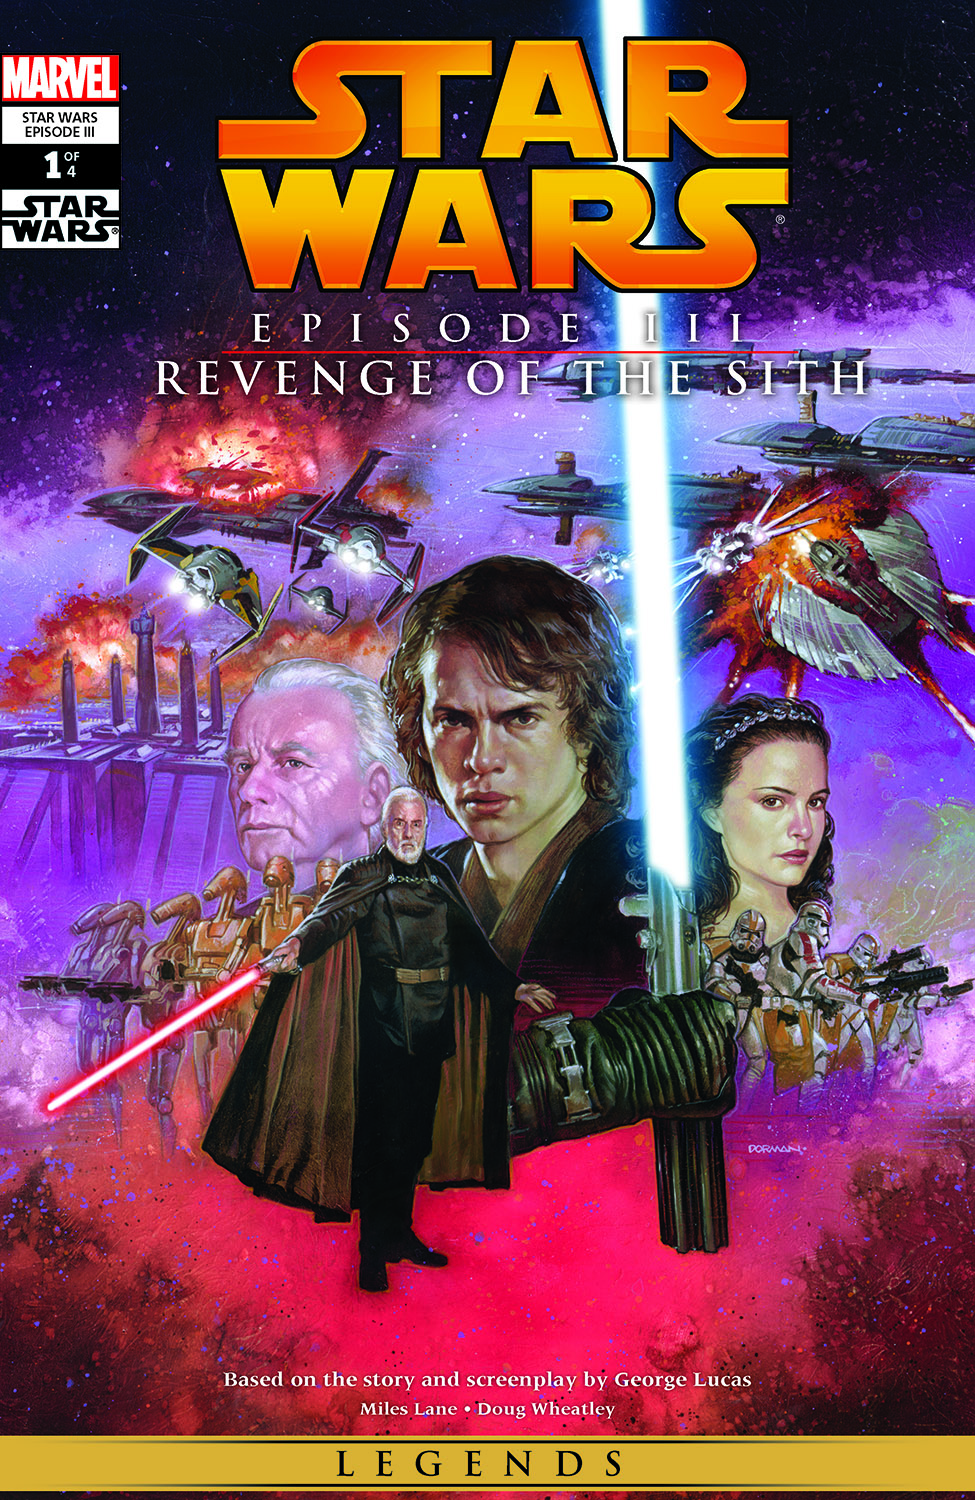 Star Wars: Episode Iii - Revenge Of The Sith (2005) #1